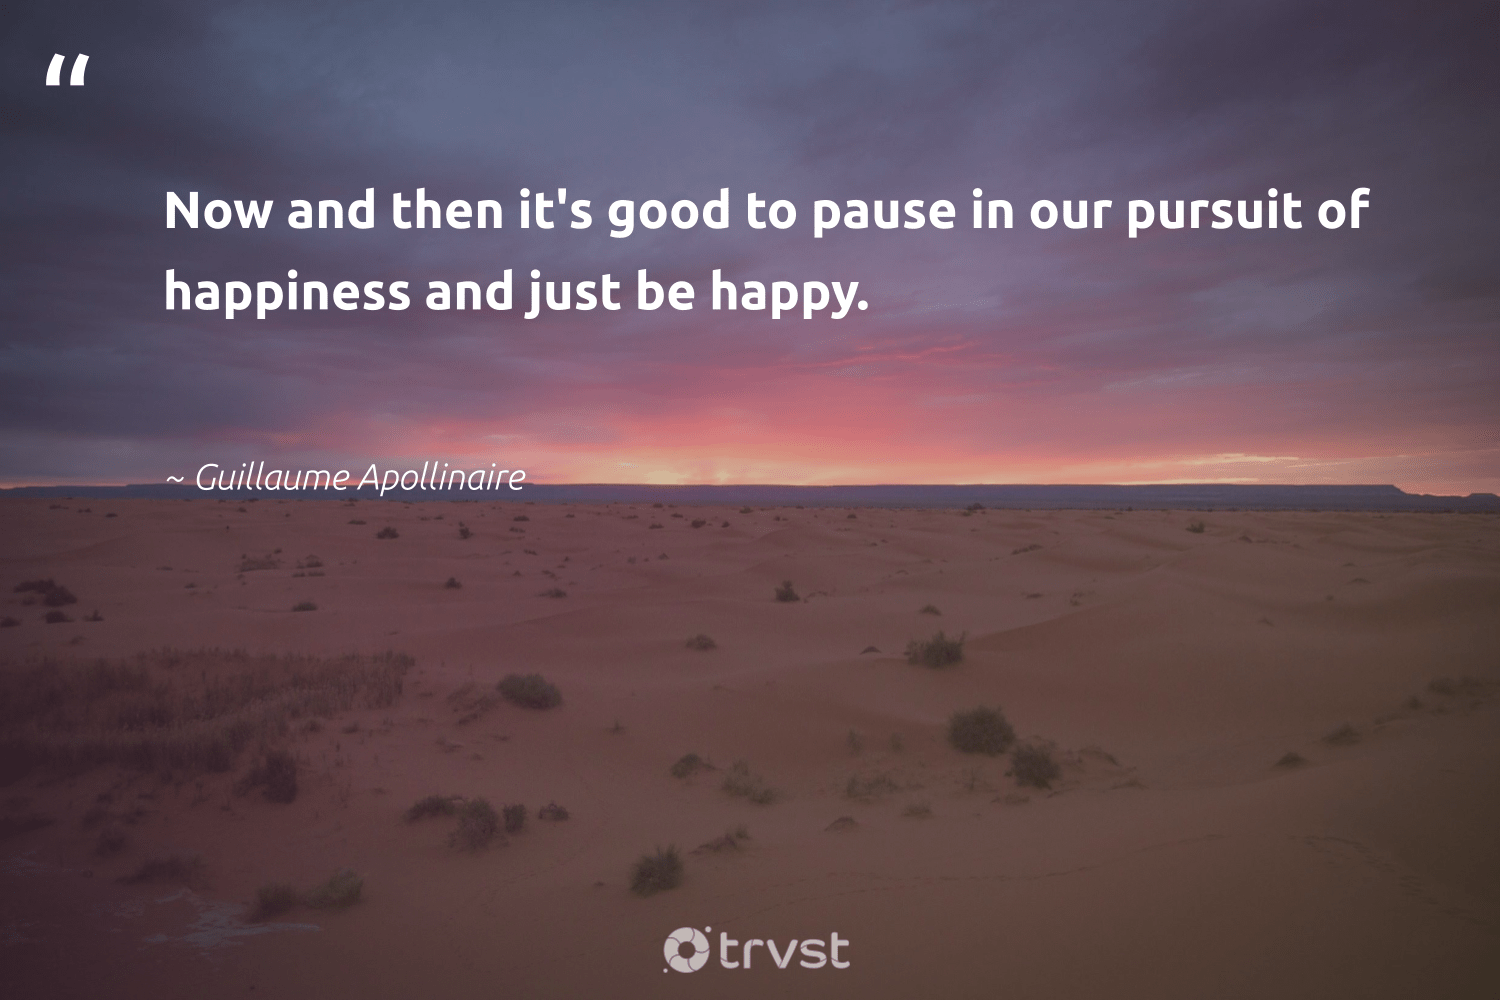 """""""Now and then it's good to pause in our pursuit of happiness and just be happy.""""  - Guillaume Apollinaire #trvst #quotes #happy #happiness #health #dotherightthing #begreat #socialchange #changemakers #socialimpact #nevergiveup #beinspired"""